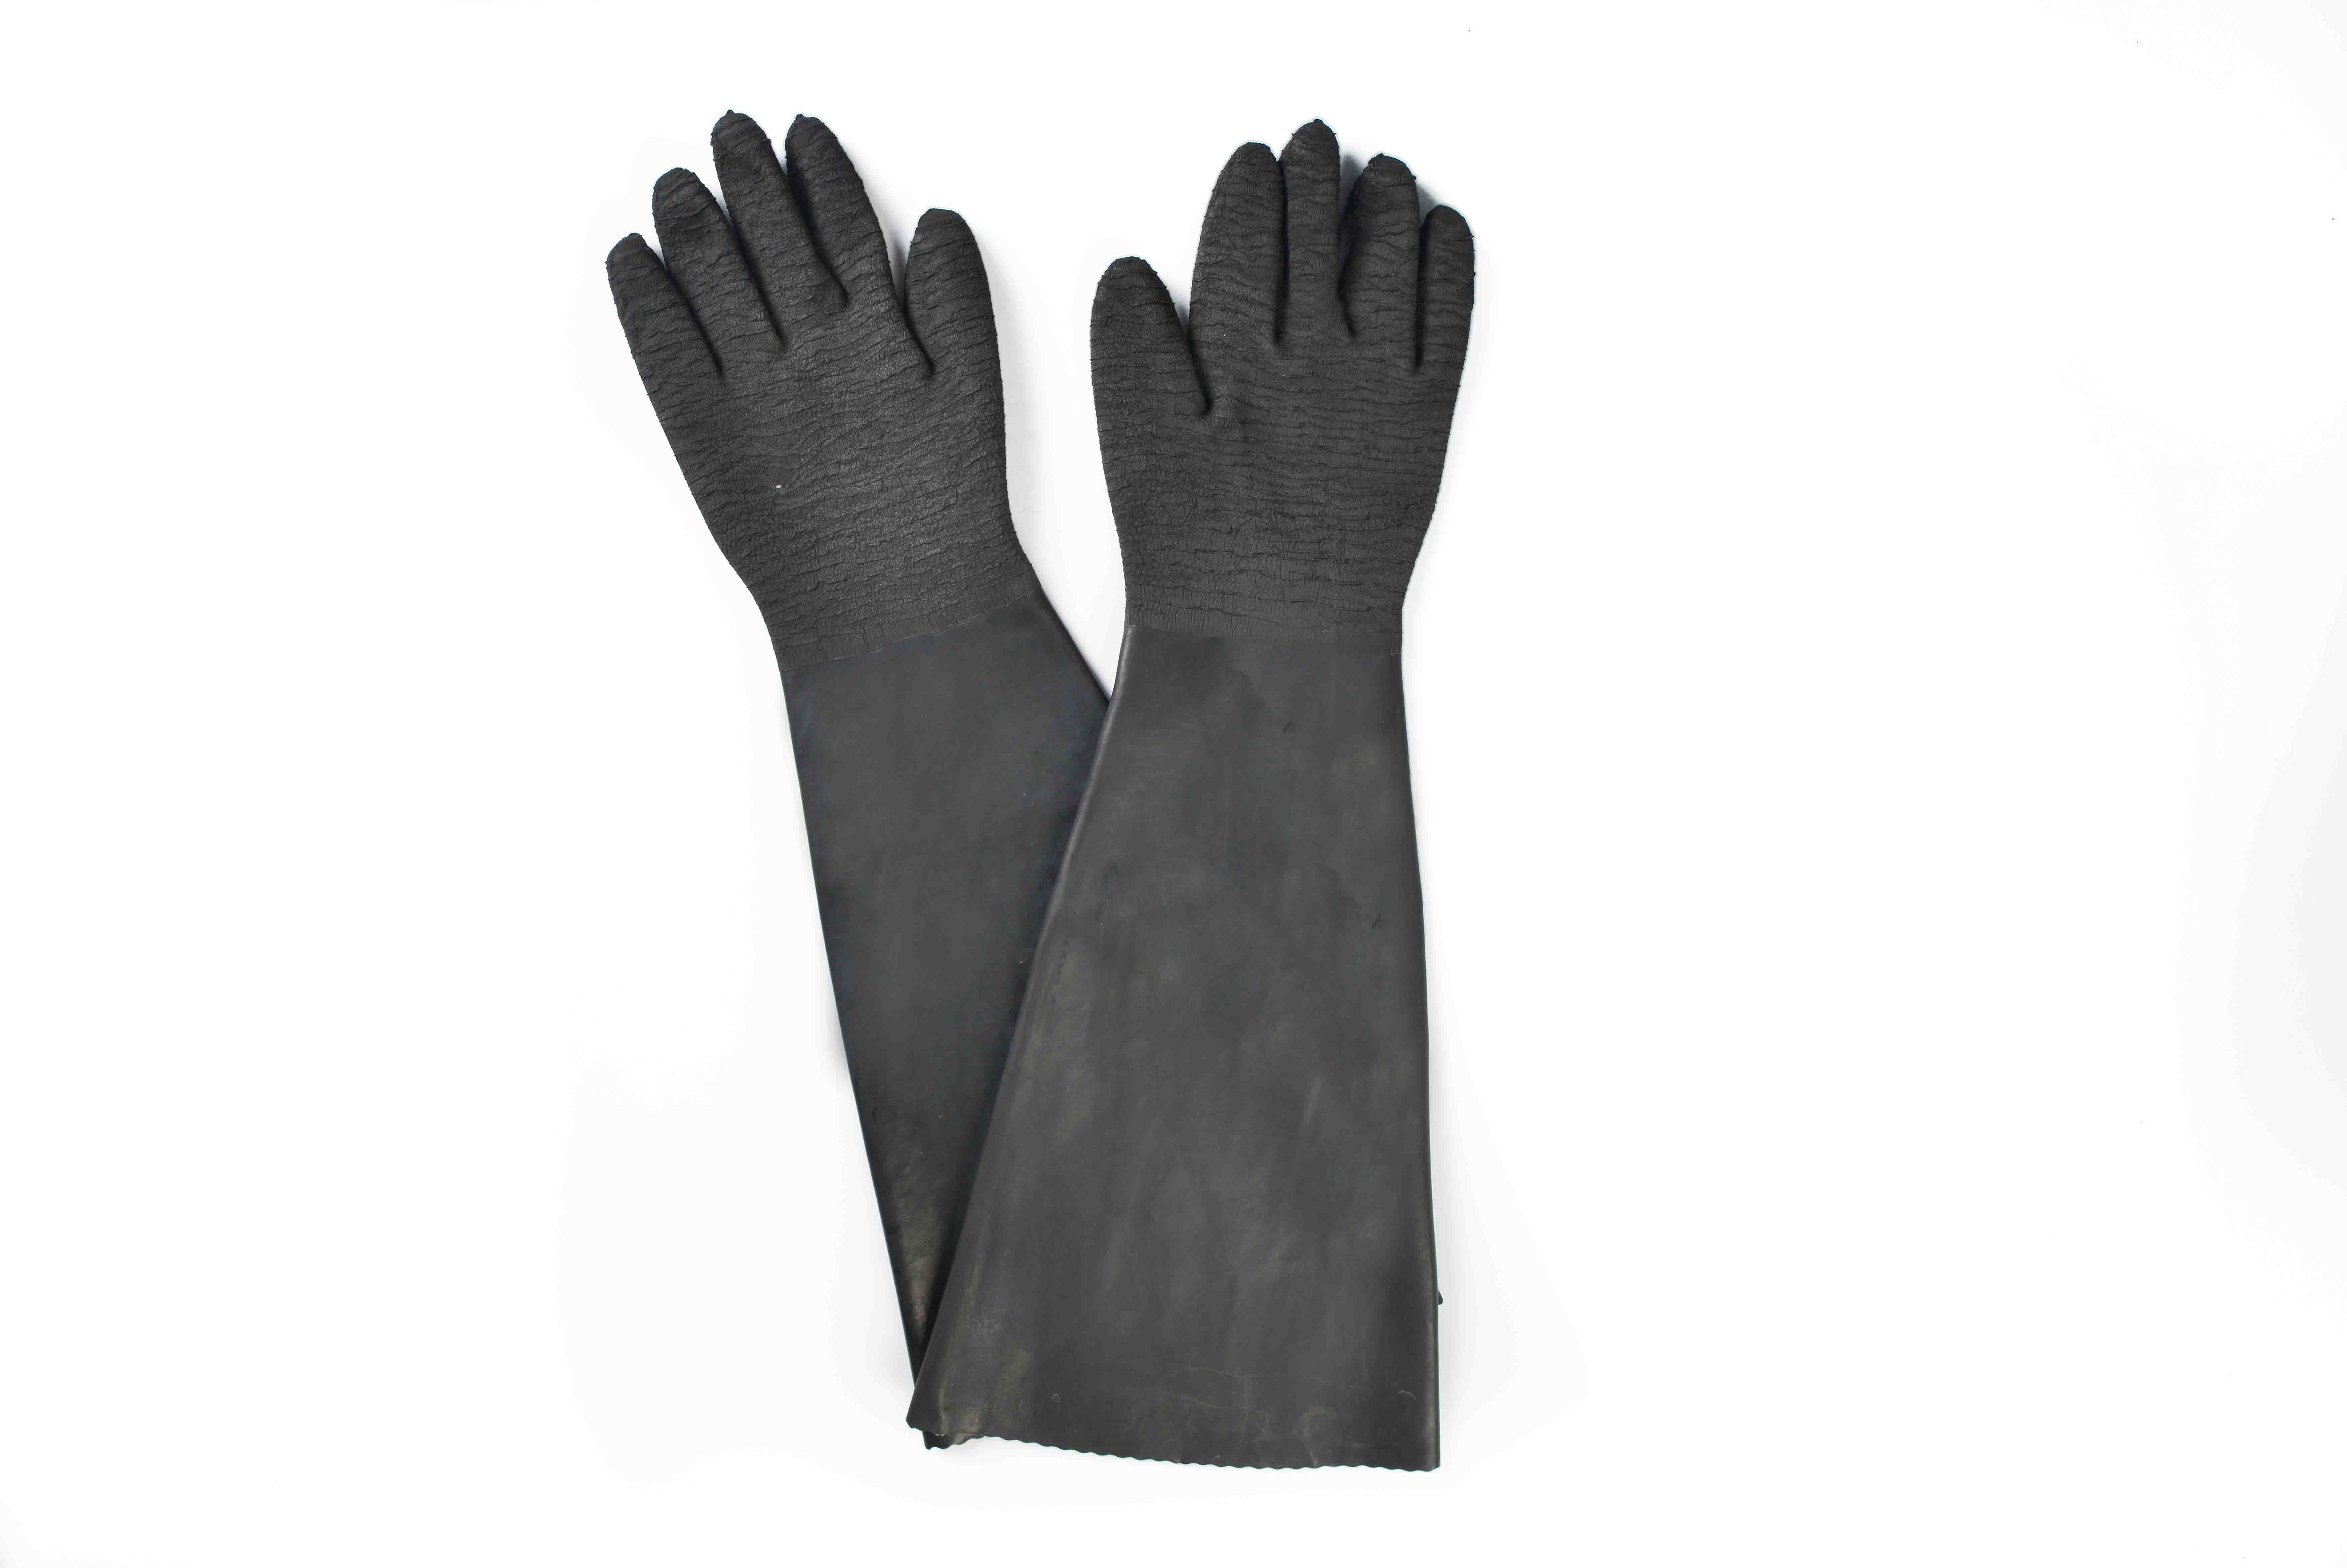 China Cheap price 24″ rubber glove with cotton linning-rough finish sale to Canberra